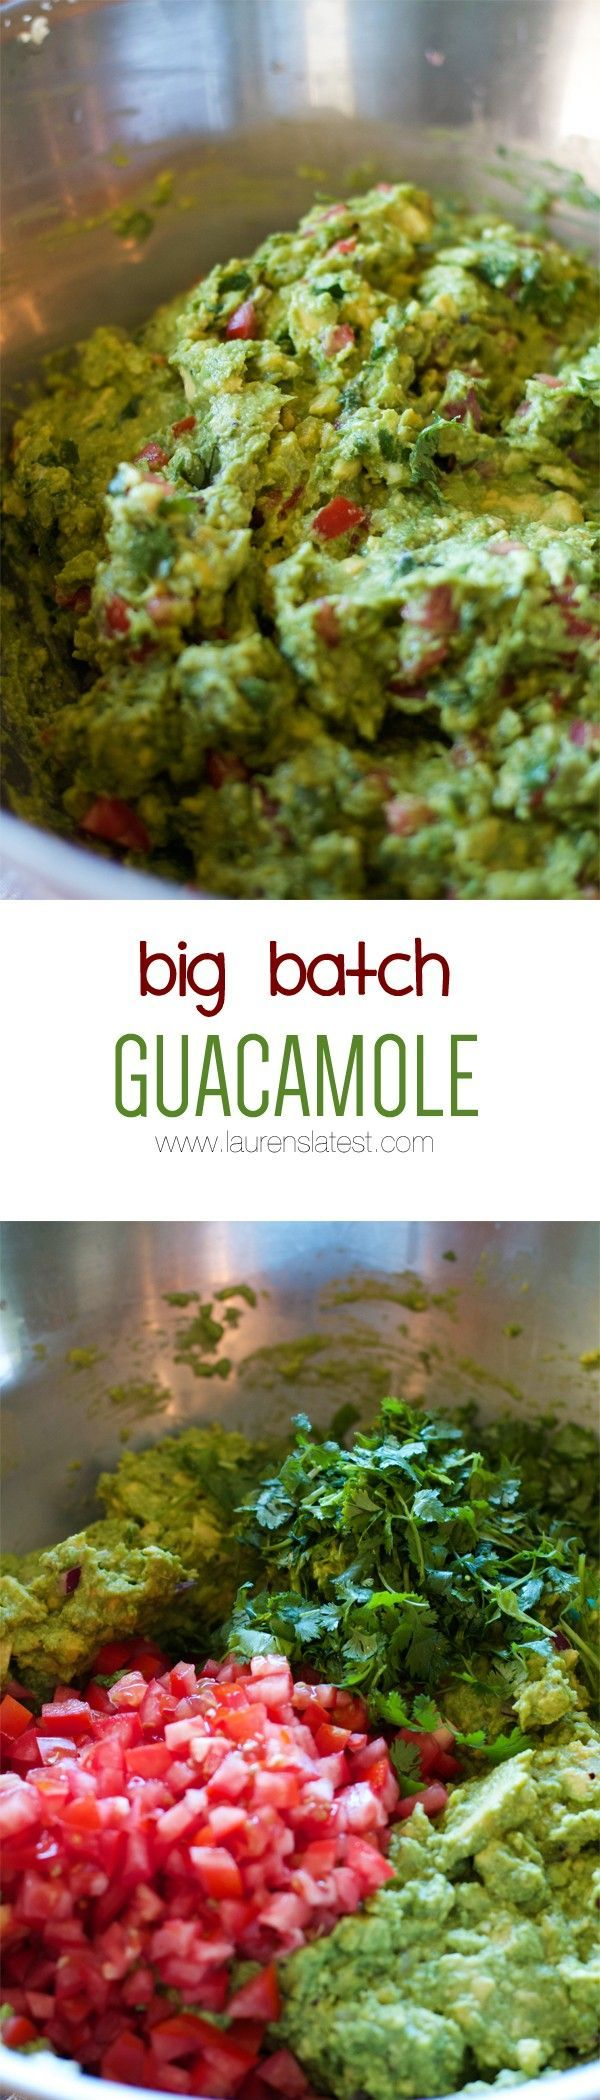 Classic guacamole recipe that you can't go wrong with.